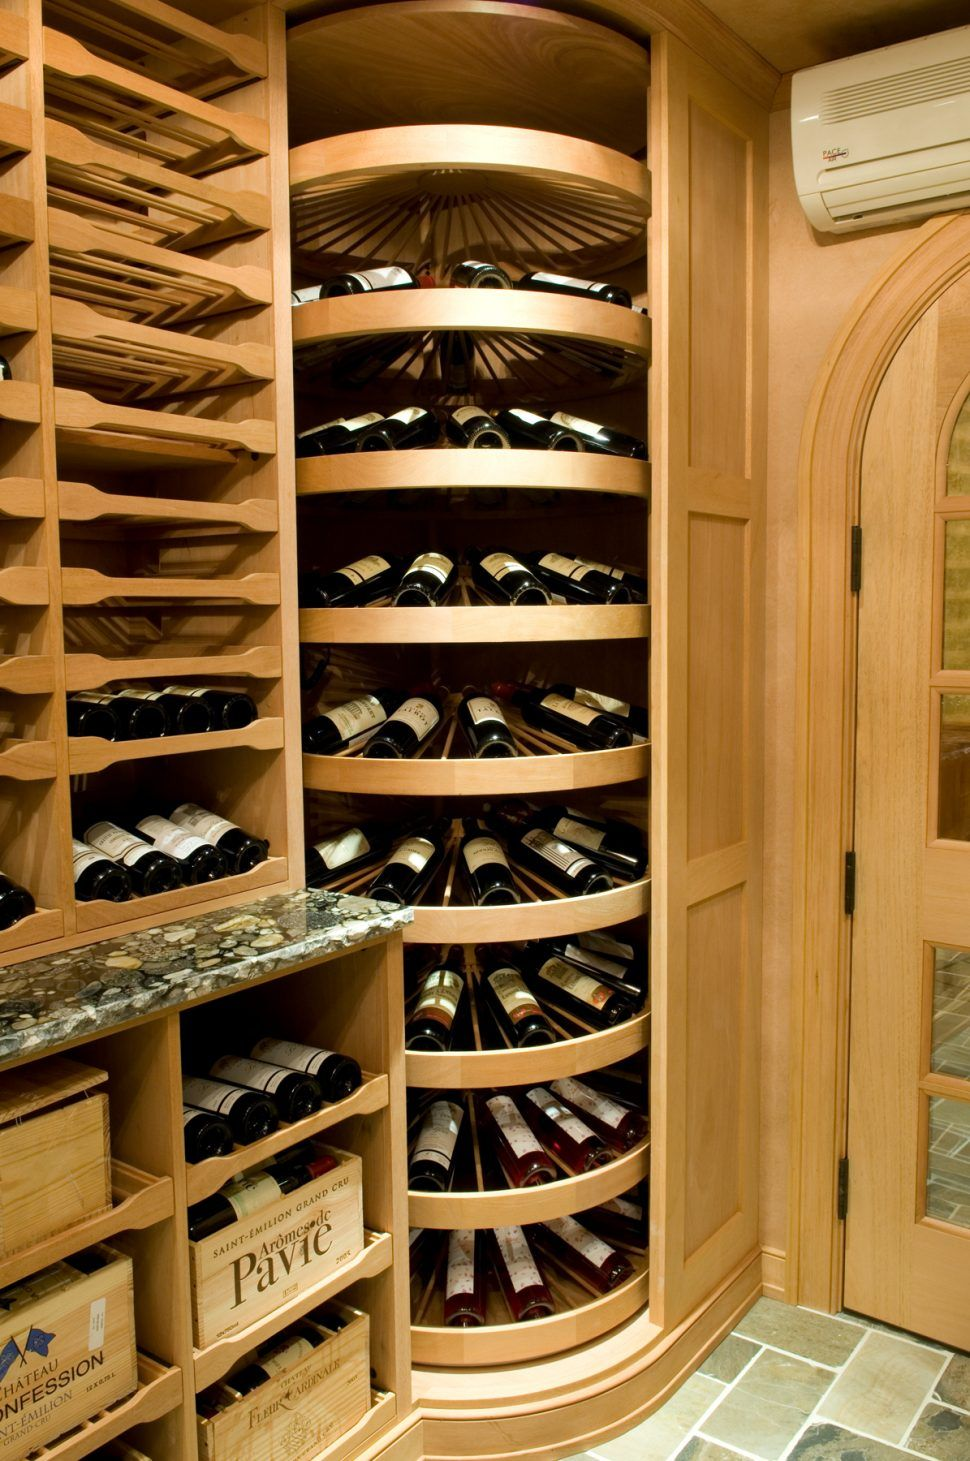 Medium Crop Of Wine Racks America